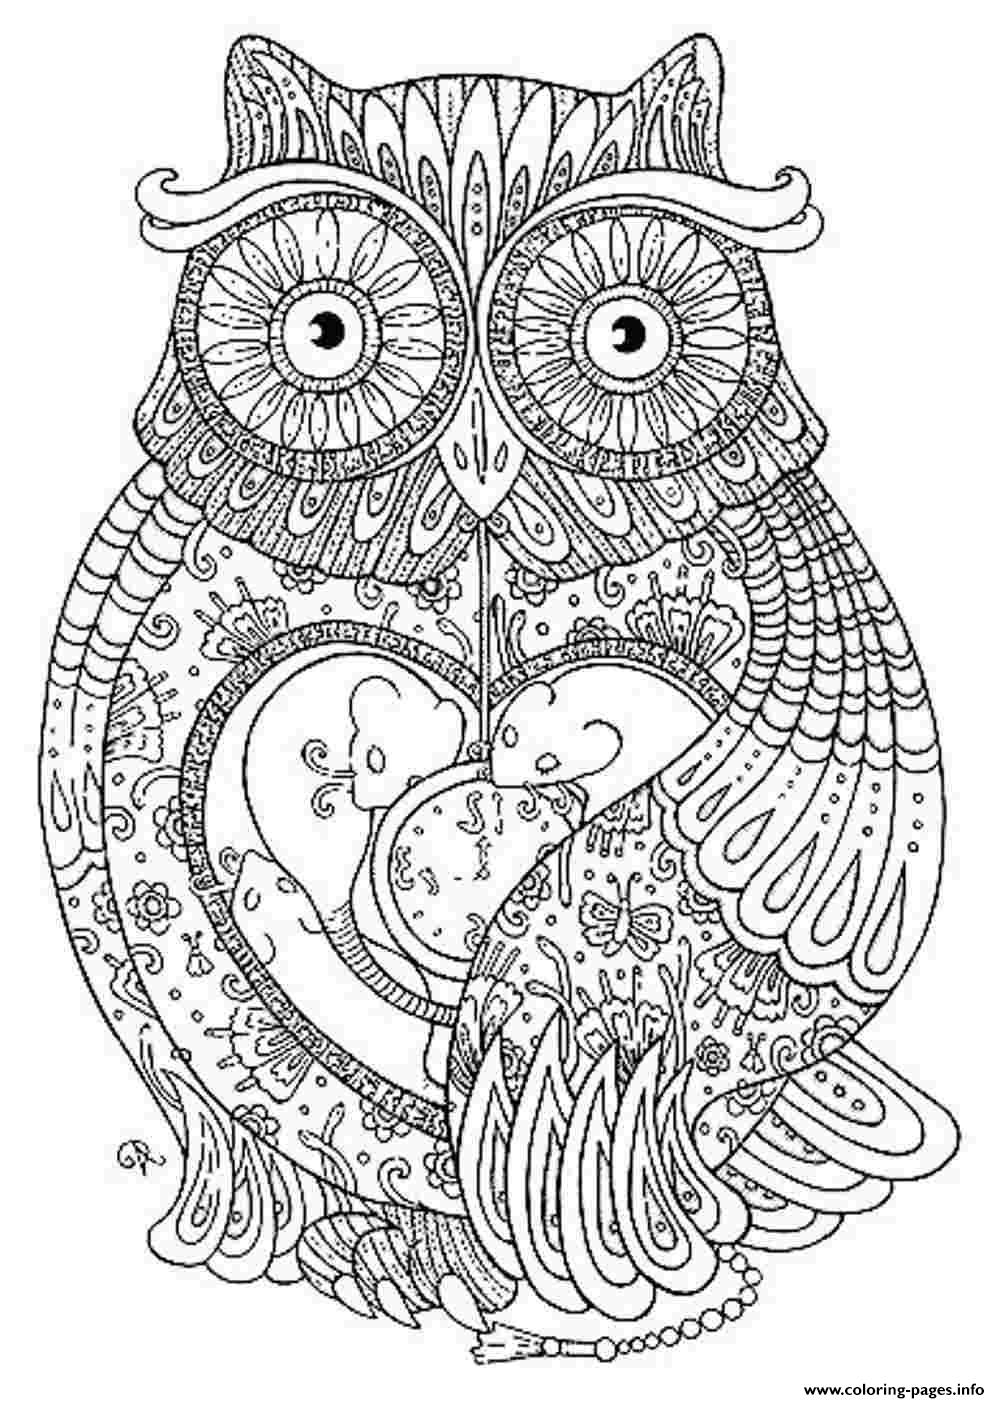 Animal coloring pages for adults coloring pages printable Coloring books for young adults